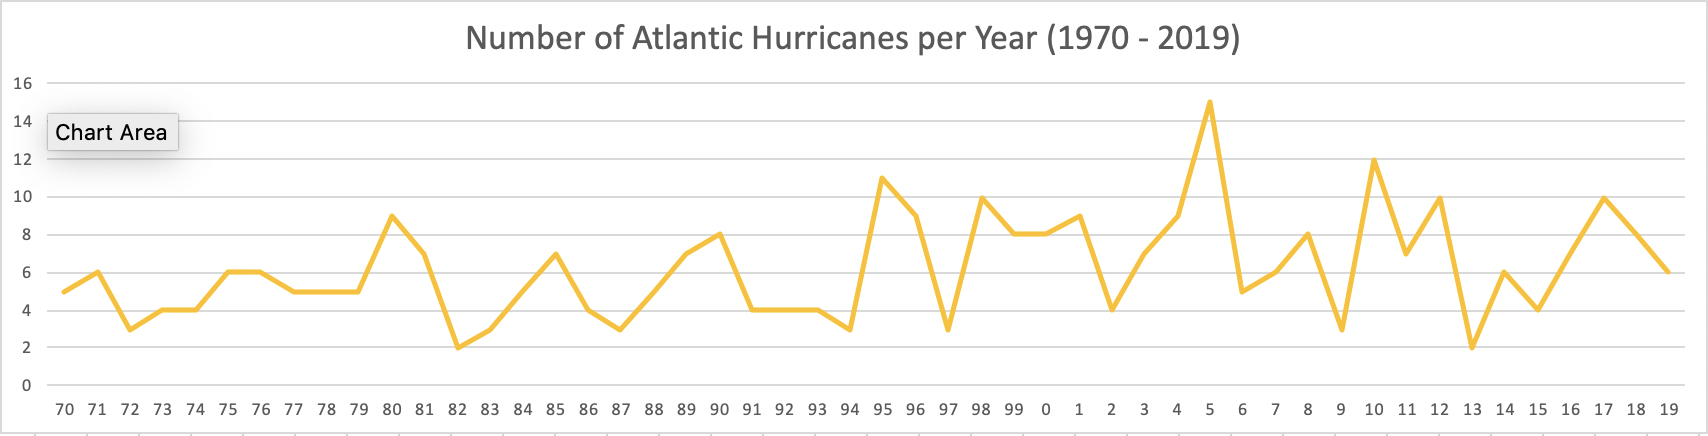 50-year history showing the number of Atlantic hurricanes per year.